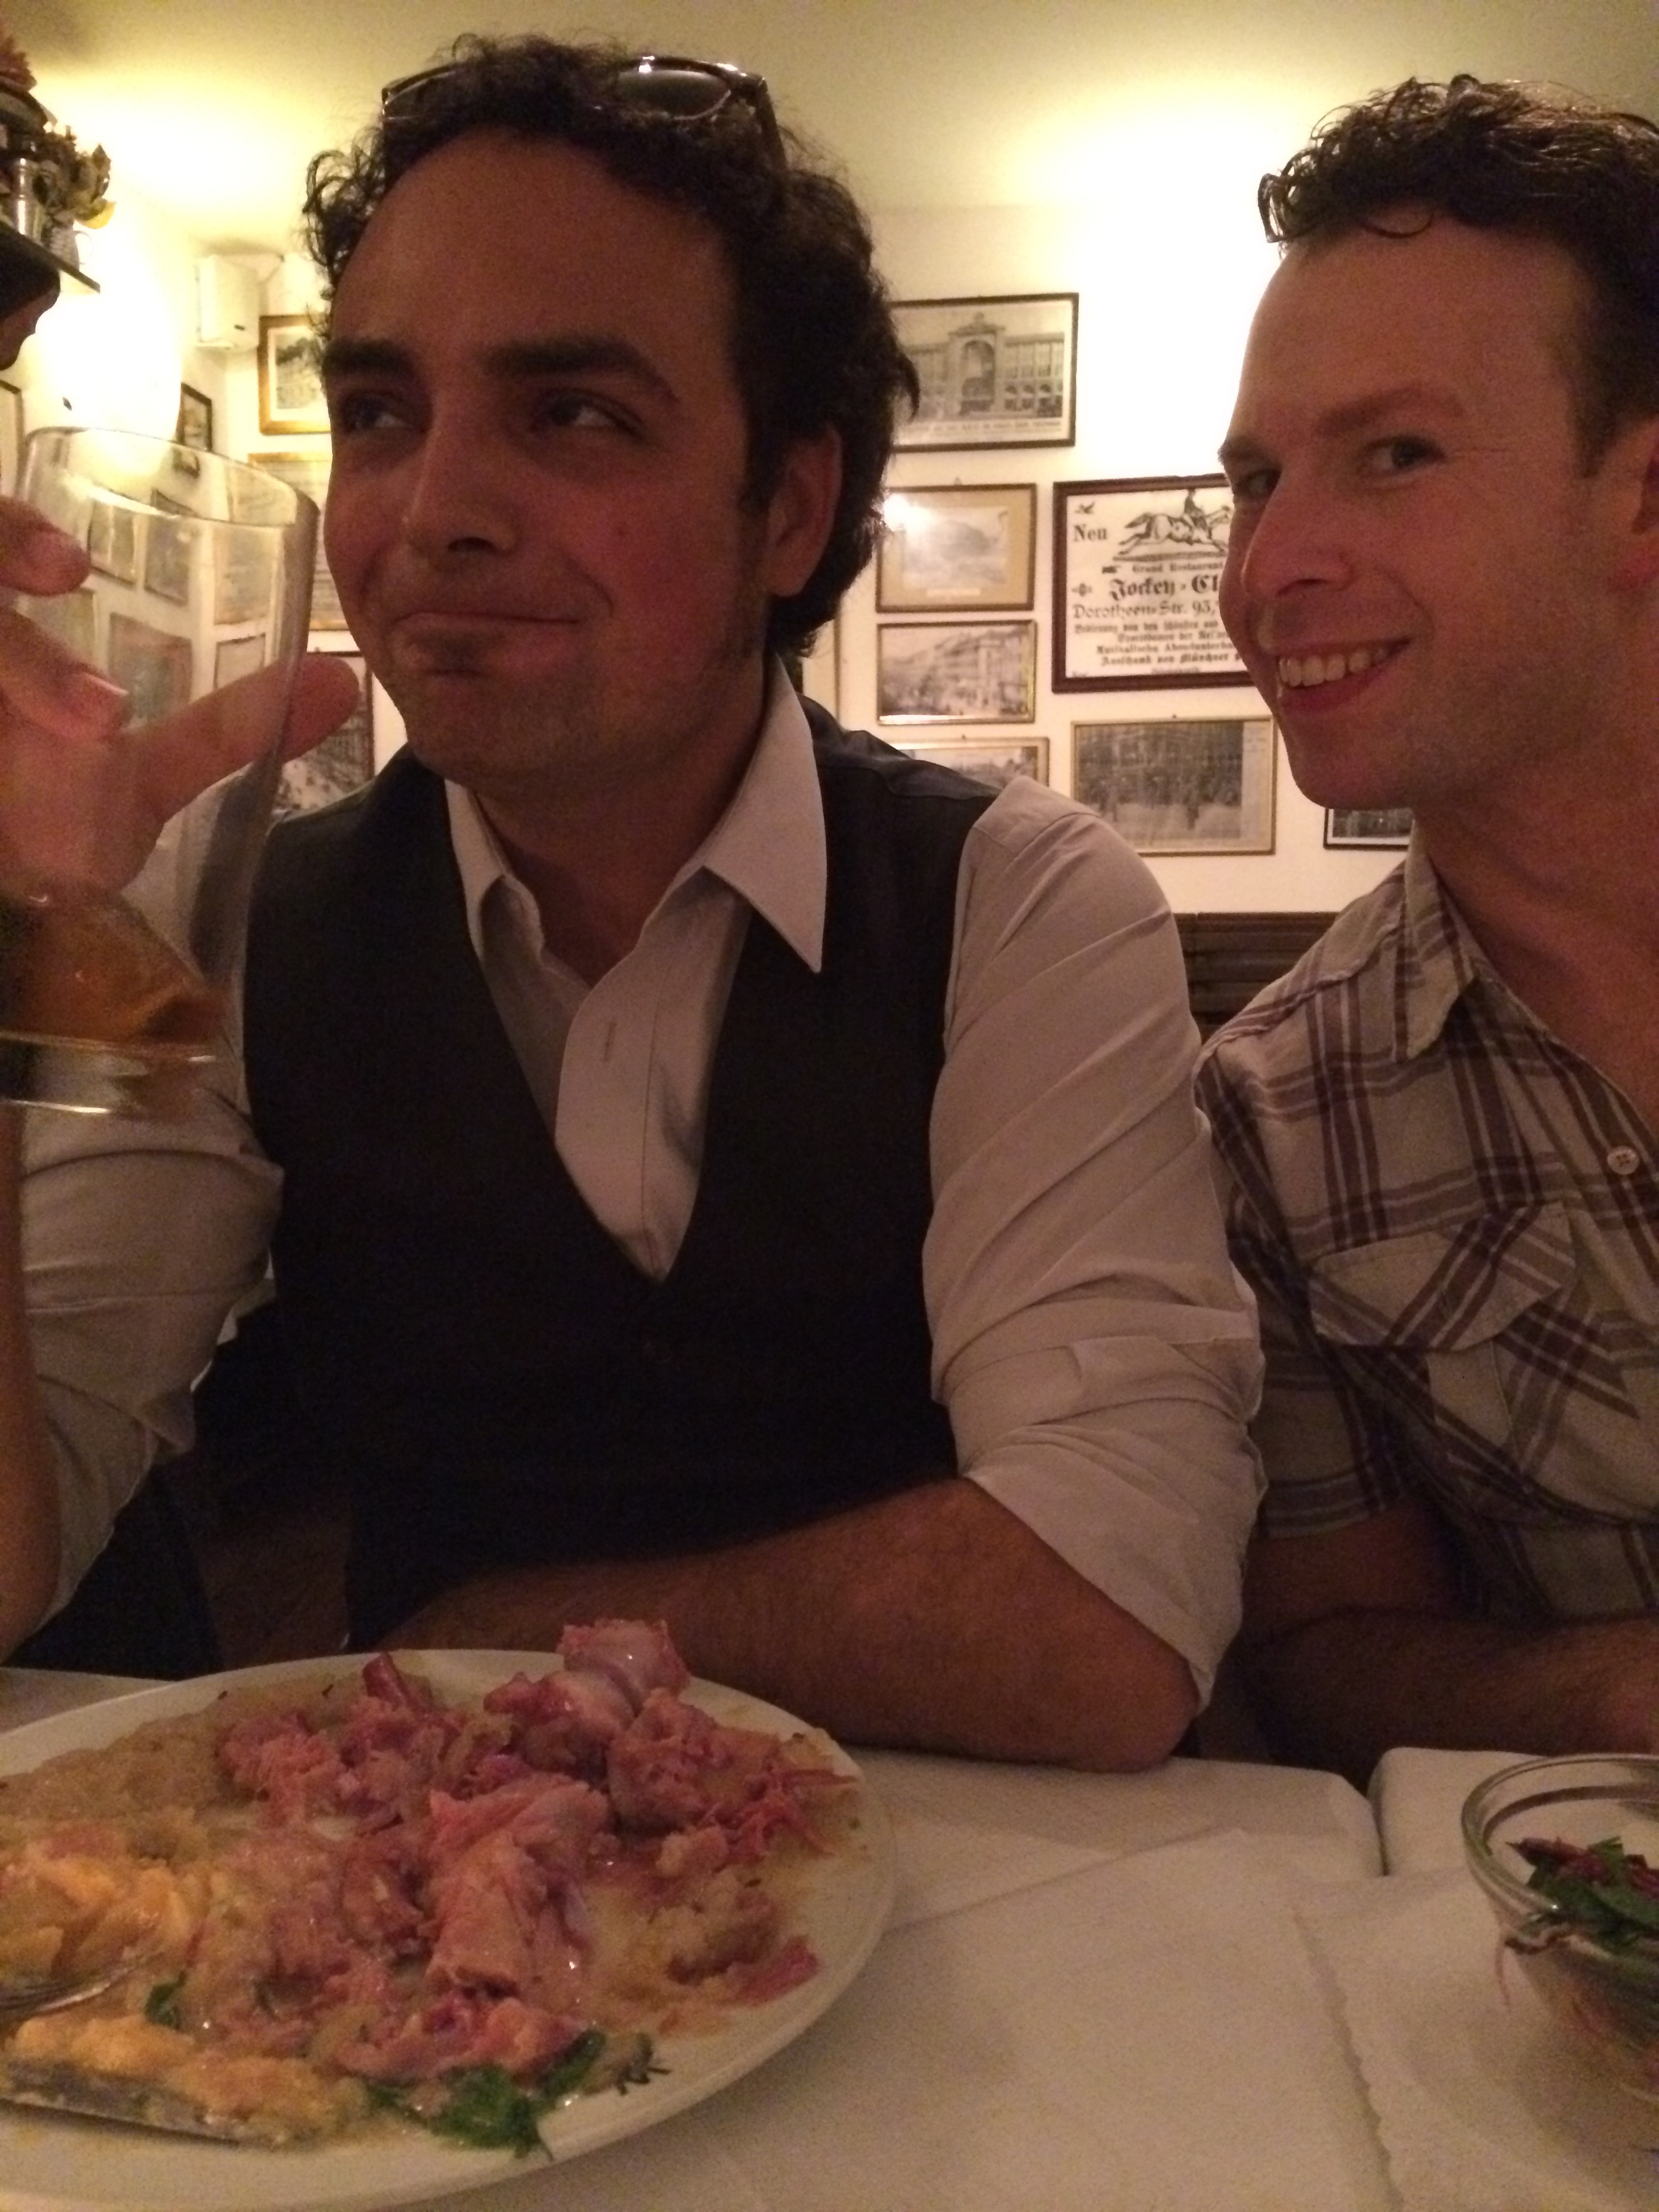 Paulie and Shawn getting fueled up during the unofficial trip to Berlin